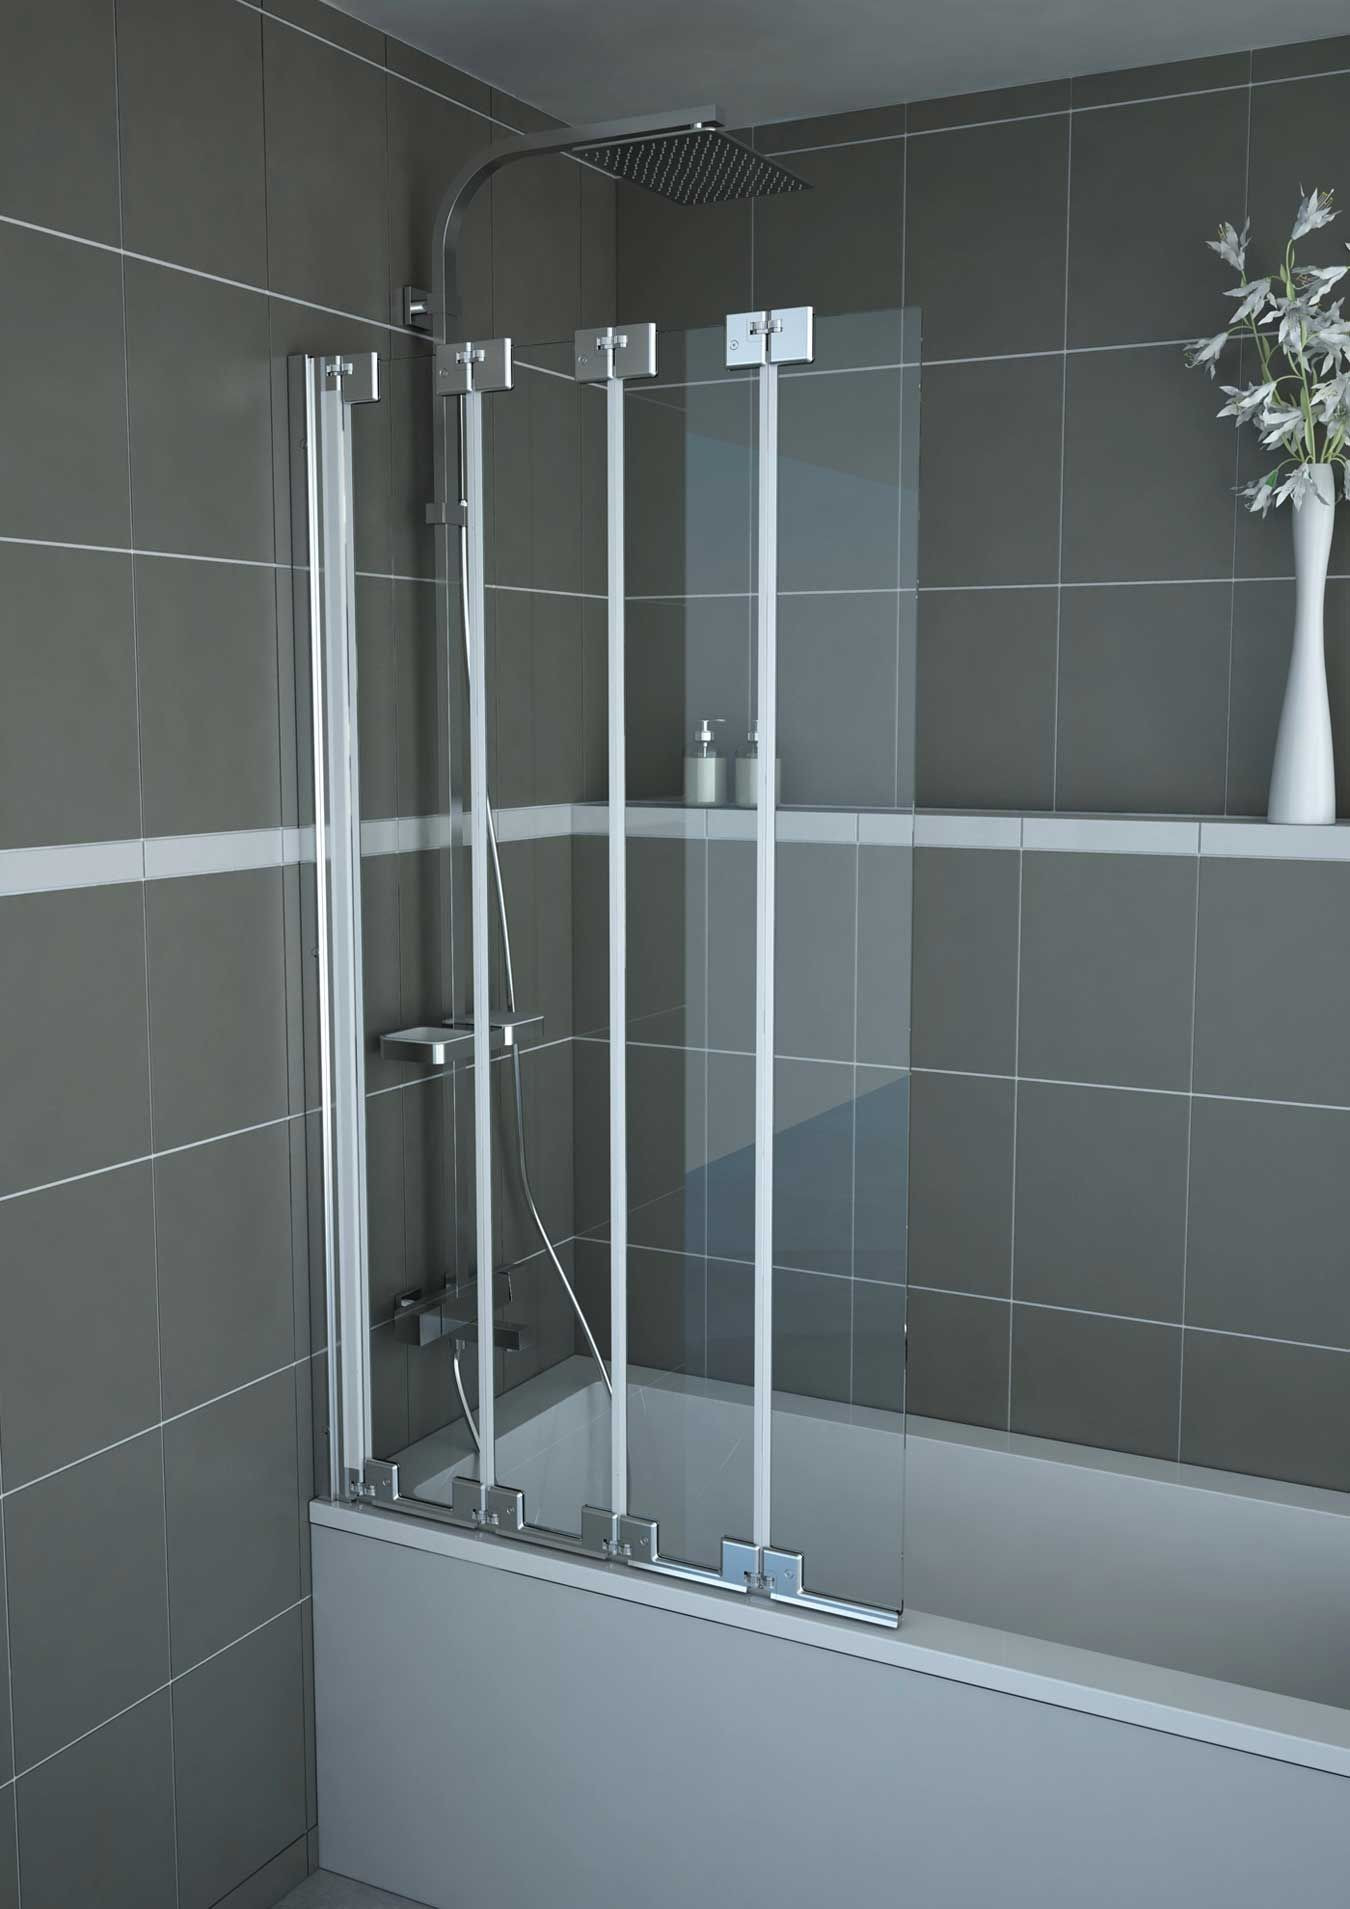 Folding Shower Doors For Tubs Httpsourceabl Pinterest